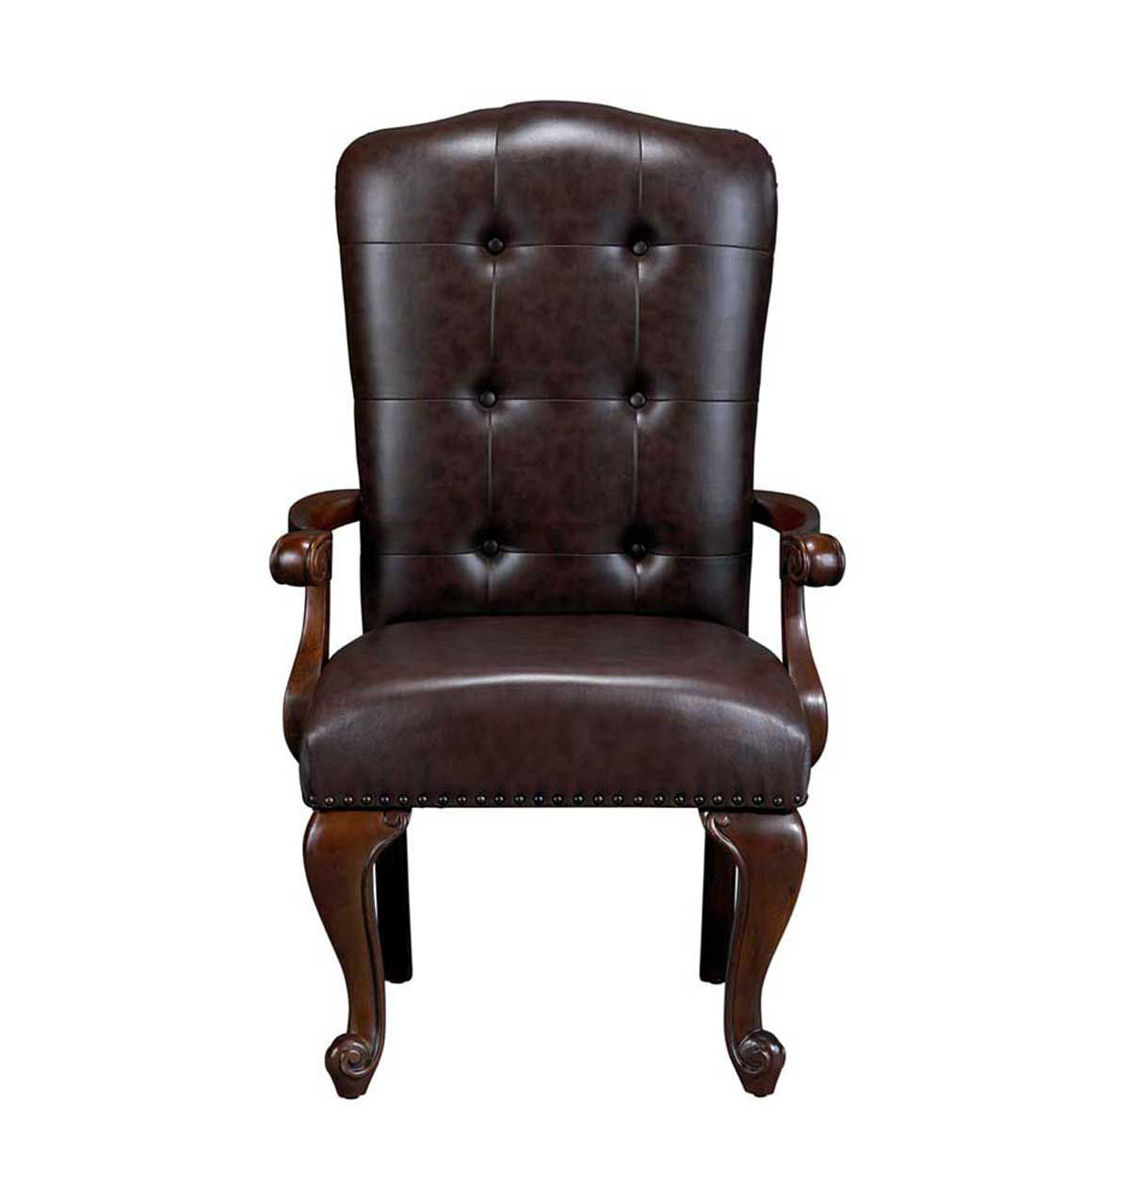 Alfordson gaming chair racing chair executive sport ergonomic office chair with footrest pu leather armrest headrest home chair grey 4.0 out of 5 stars 78 $159.90 $ 159. SOPHIA DINING ARM CHAIR | Badcock Home Furniture &more